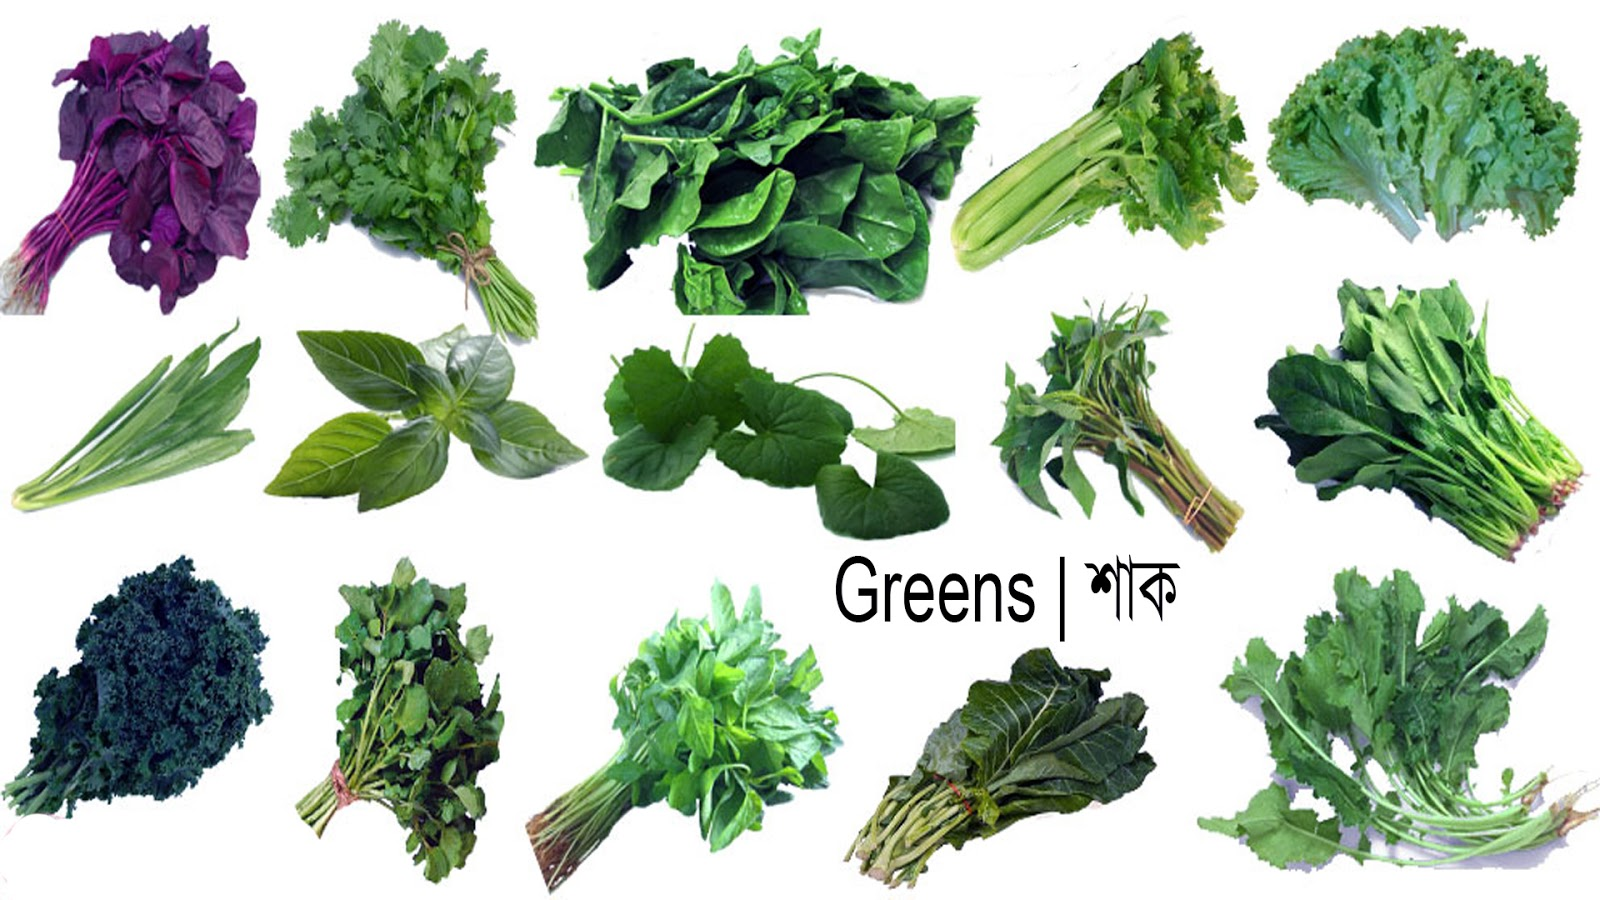 Greens or Leafy Greens Names, Meaning & Image | Necessary Vocabulary